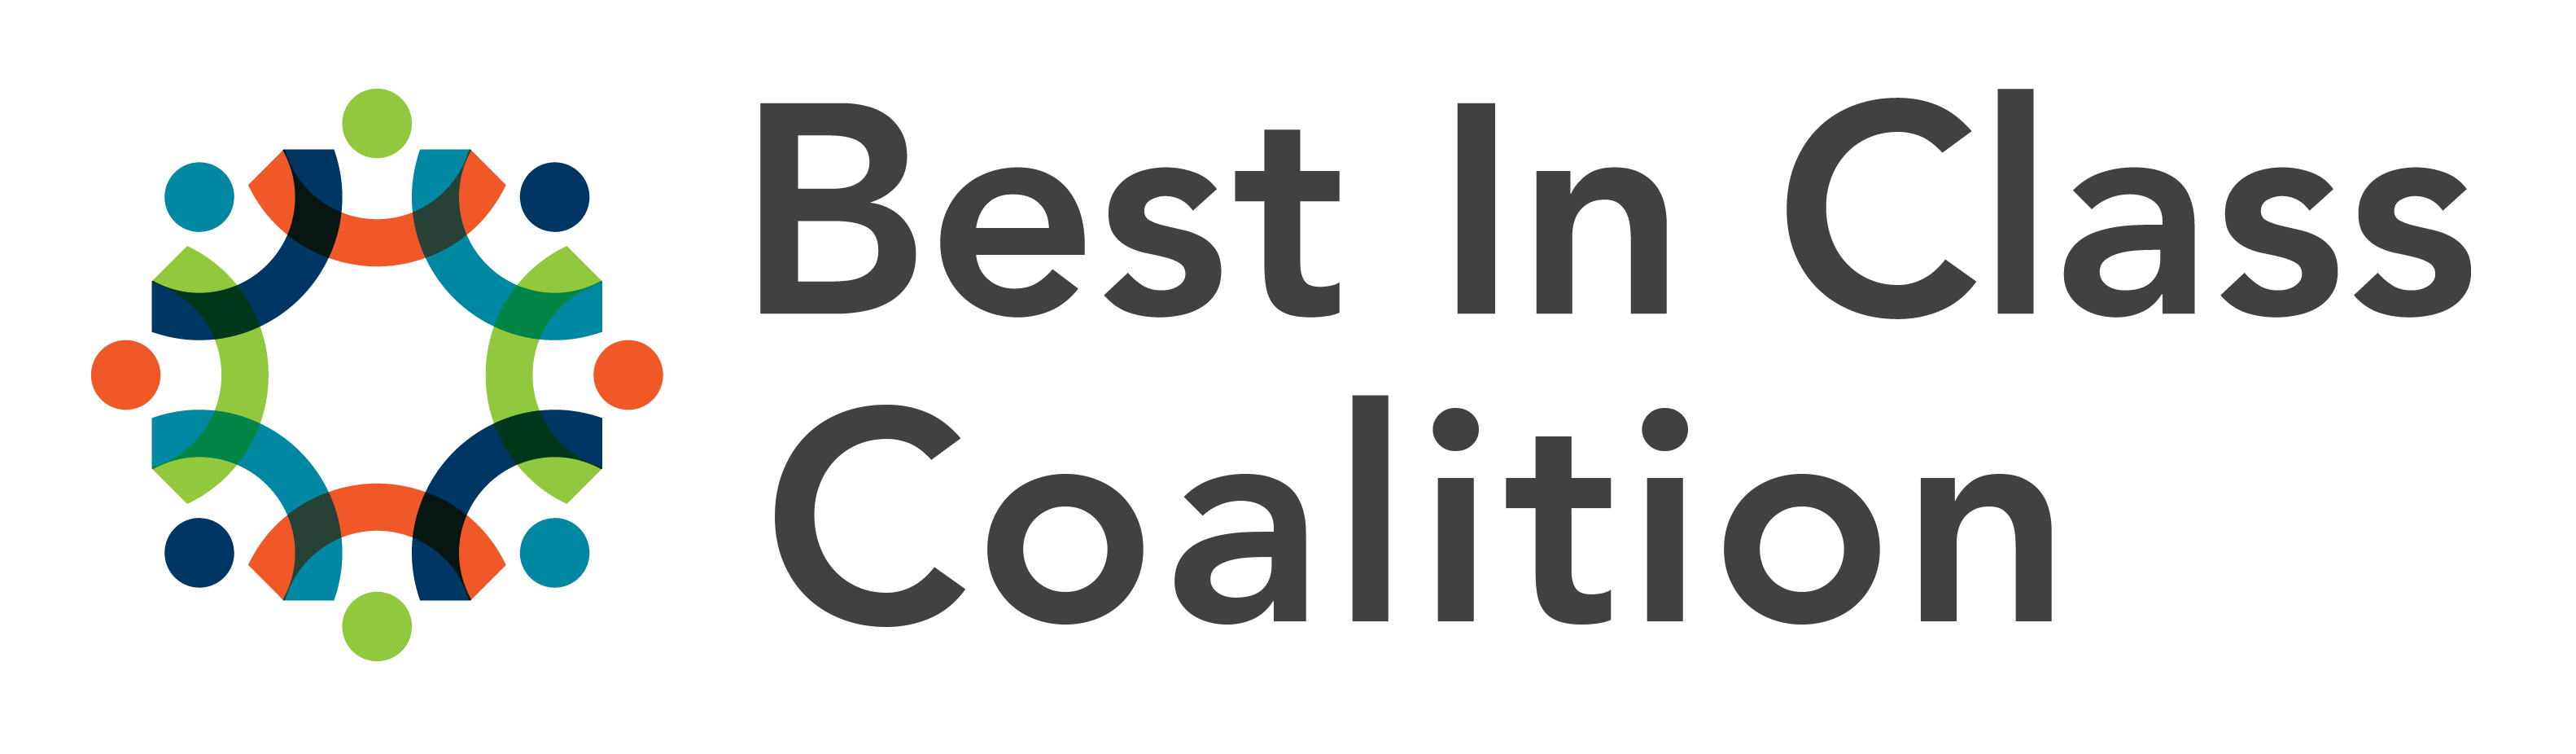 Best in Class Coalition